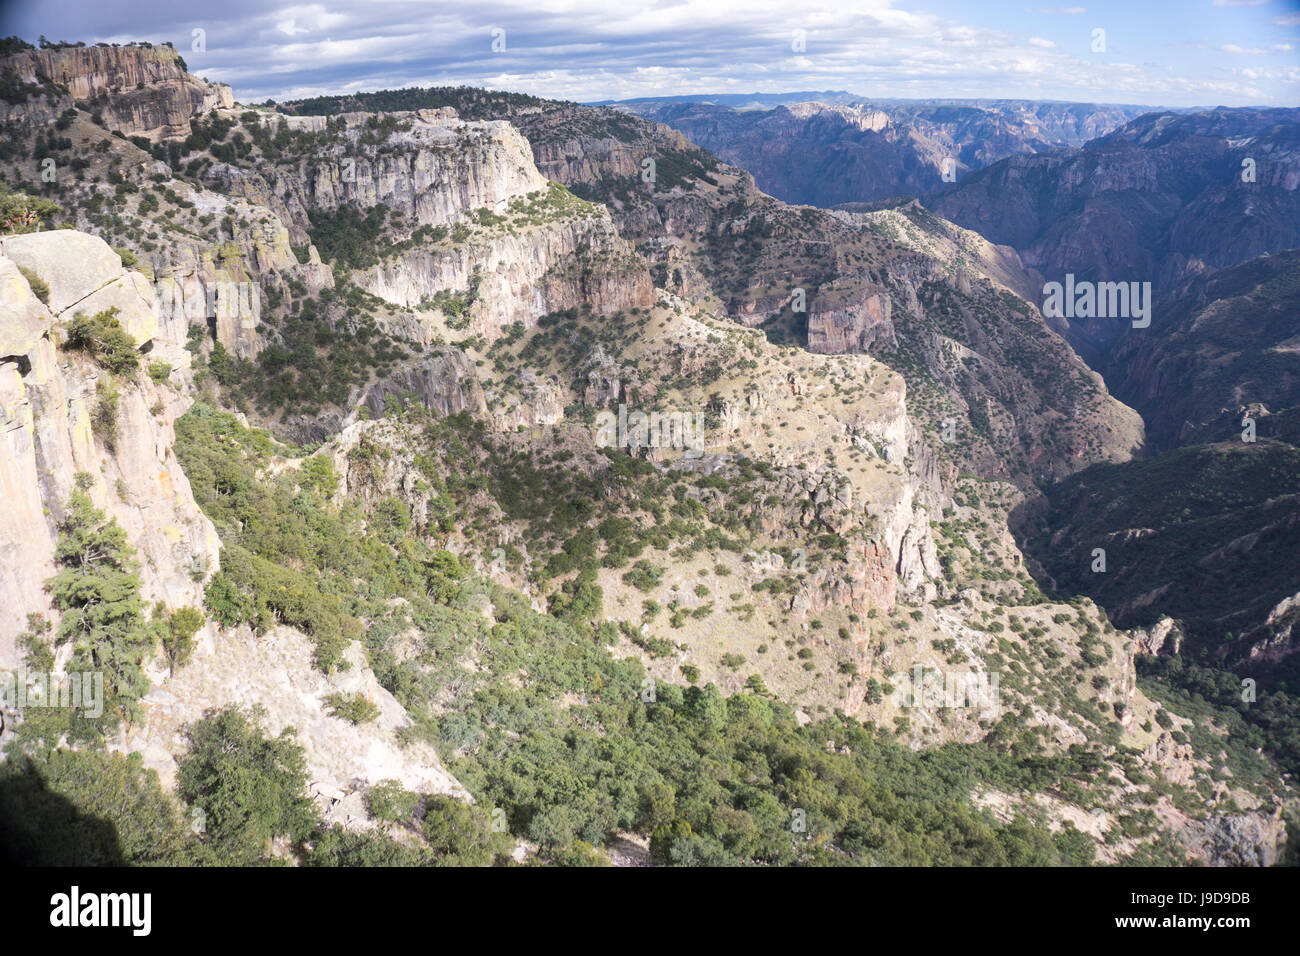 Copper Canyon, larger and deeper than the Grand Canyon, Mexico, North America - Stock Image